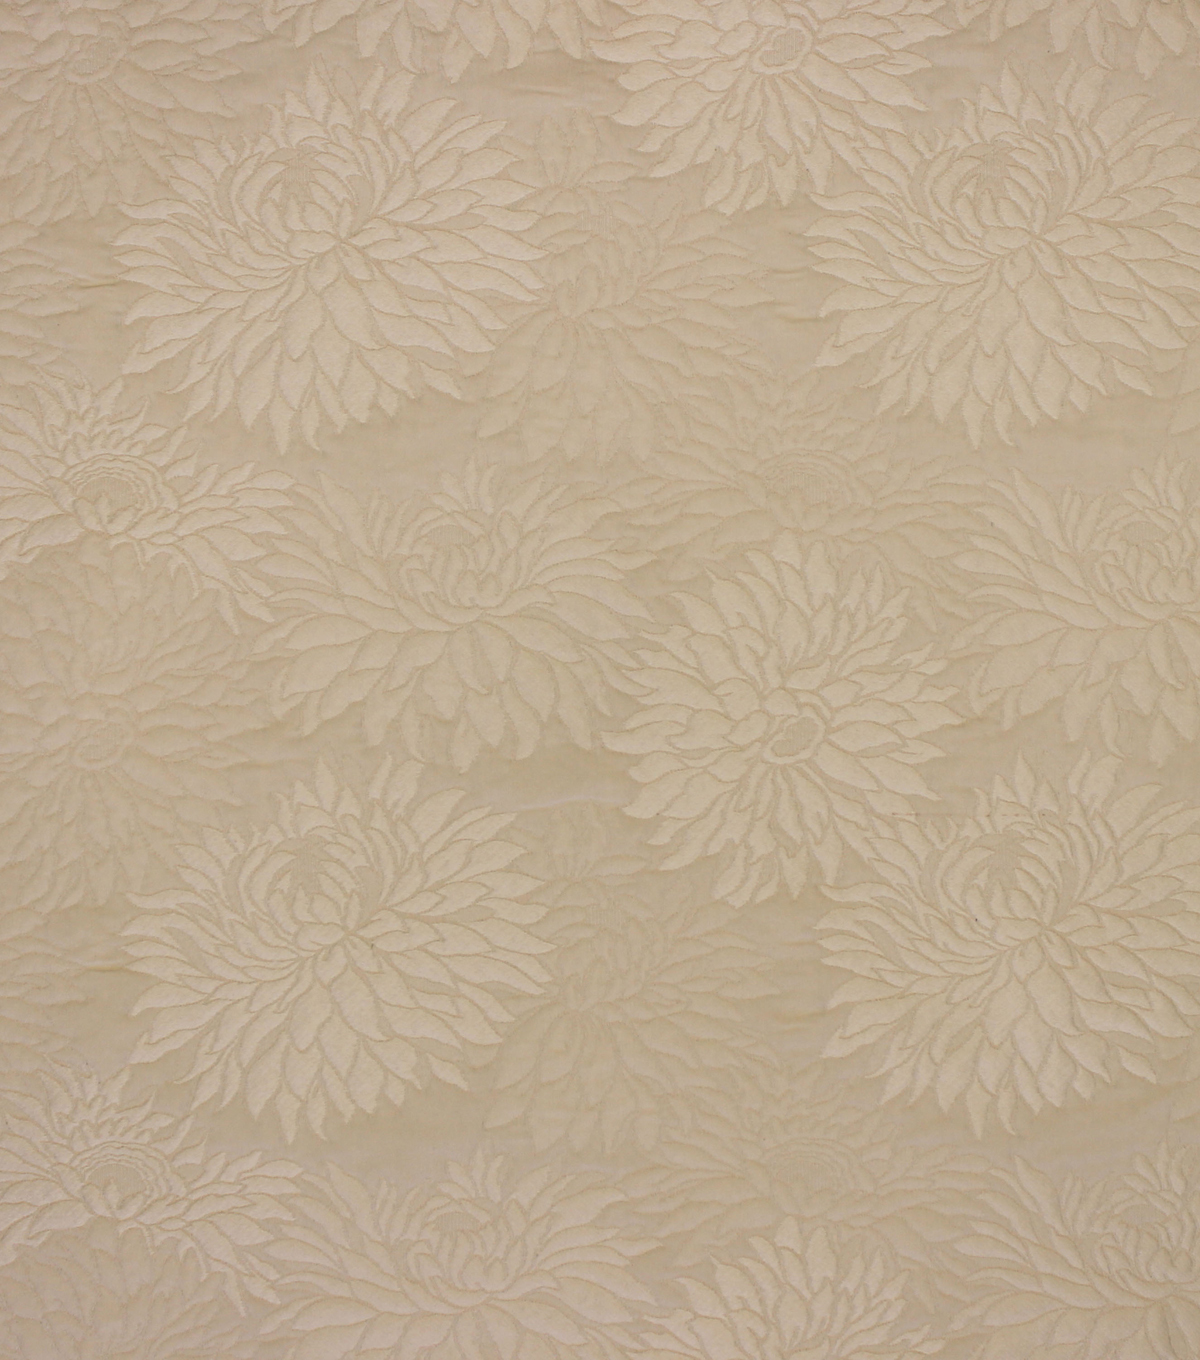 "Home Decor 8""x8"" Fabric Swatch-Upholstery Fabric Barrow M8547-5811 Ivory"